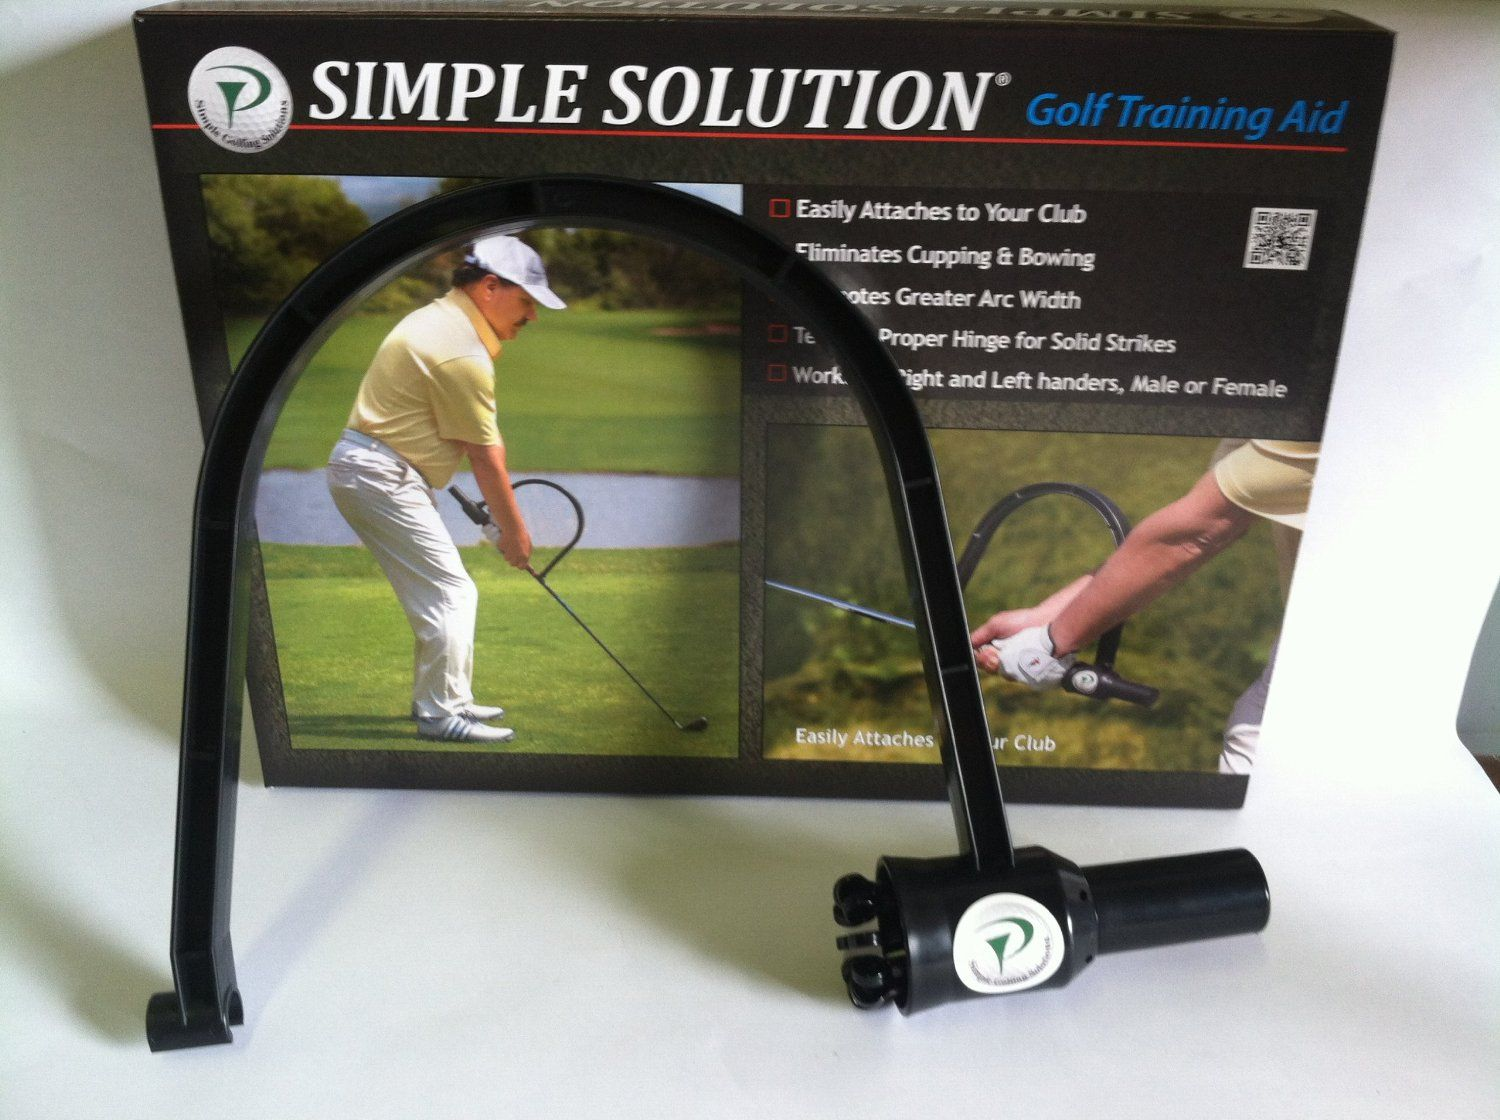 This Revolutionary Golf Swing Training Aid By Simple Solutions Promotes A One Piece Takeaway With